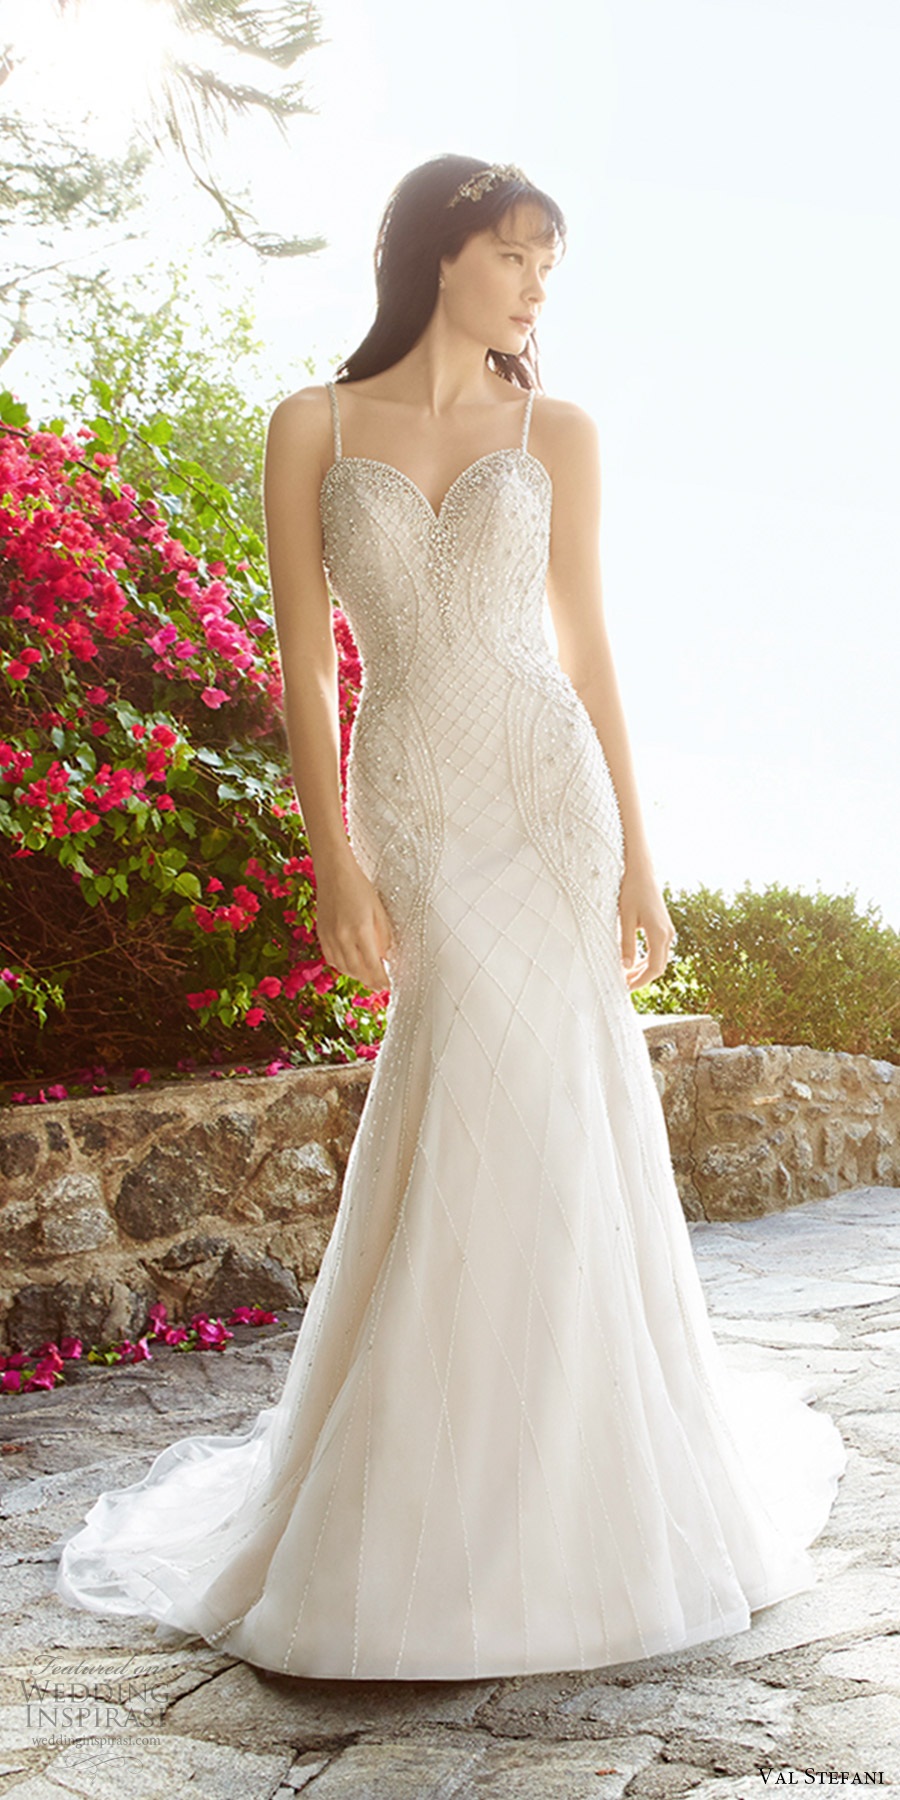 val stefani fall 2017 bridal sleeveless thin straps sweetheart beaded bodice fit flare mermaid wedding dress (d8137) mv open back cross straps train glam elegant